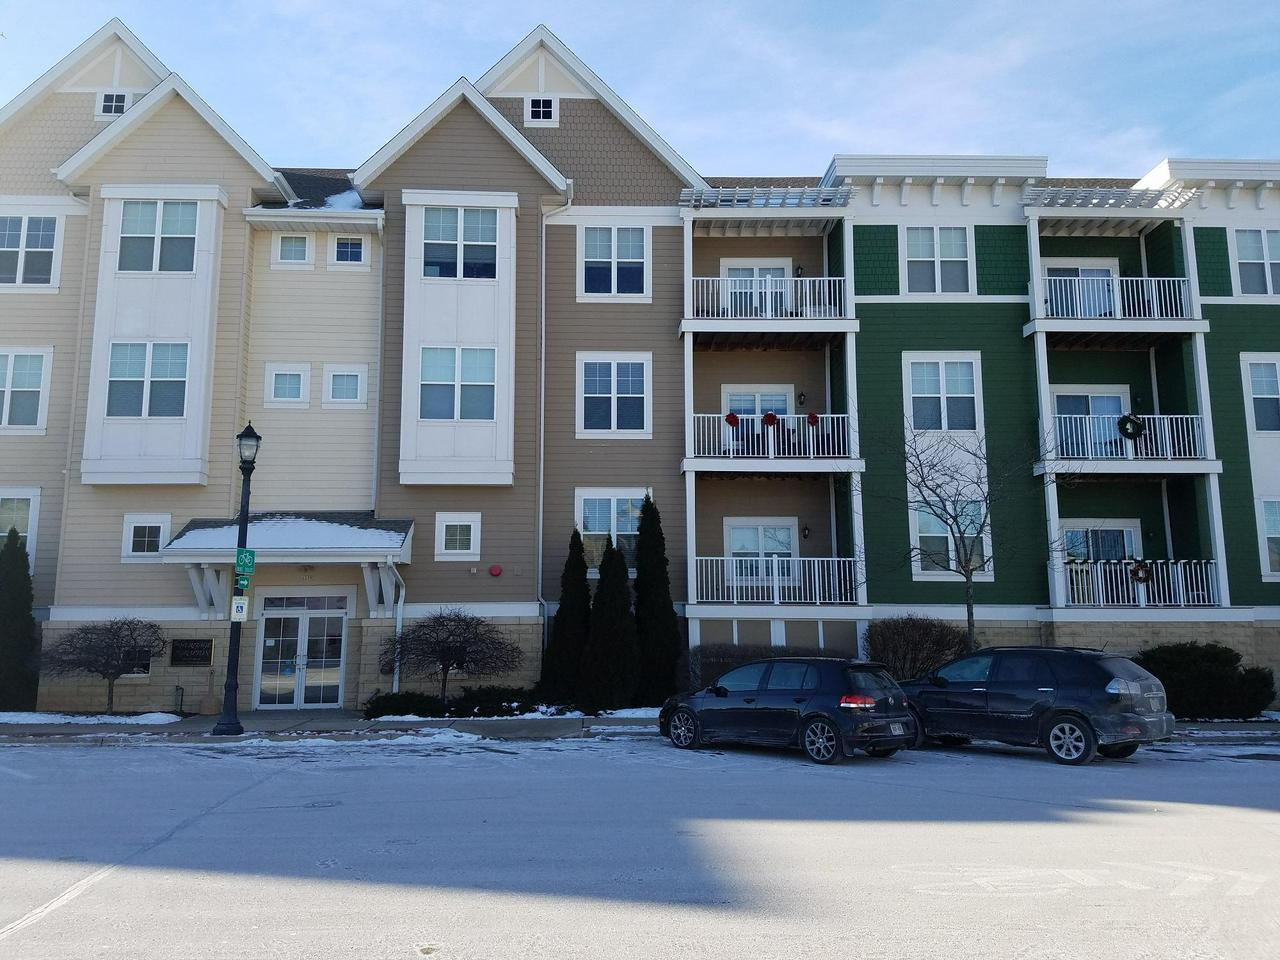 A very spacious condo is now available for a new owner in Grafton.The unit has 1 bedroom,a very large den, a bath with a spa tub, & 1 underground parking space. Entering the unit you will notice the laminate wood flooring throughout & the vaulted ceiling in the living room. The kitchen offers ample cabinets & counter space for food prep.There is a breakfast bar next to the dining room zone.A wall bump-out is a great place for a study desk.The large den offers endless options for an owner's personal lifestyle; an office,a 2nd bedroom, or a TV lounge.The balcony & clubhouse are wonderful bonuses